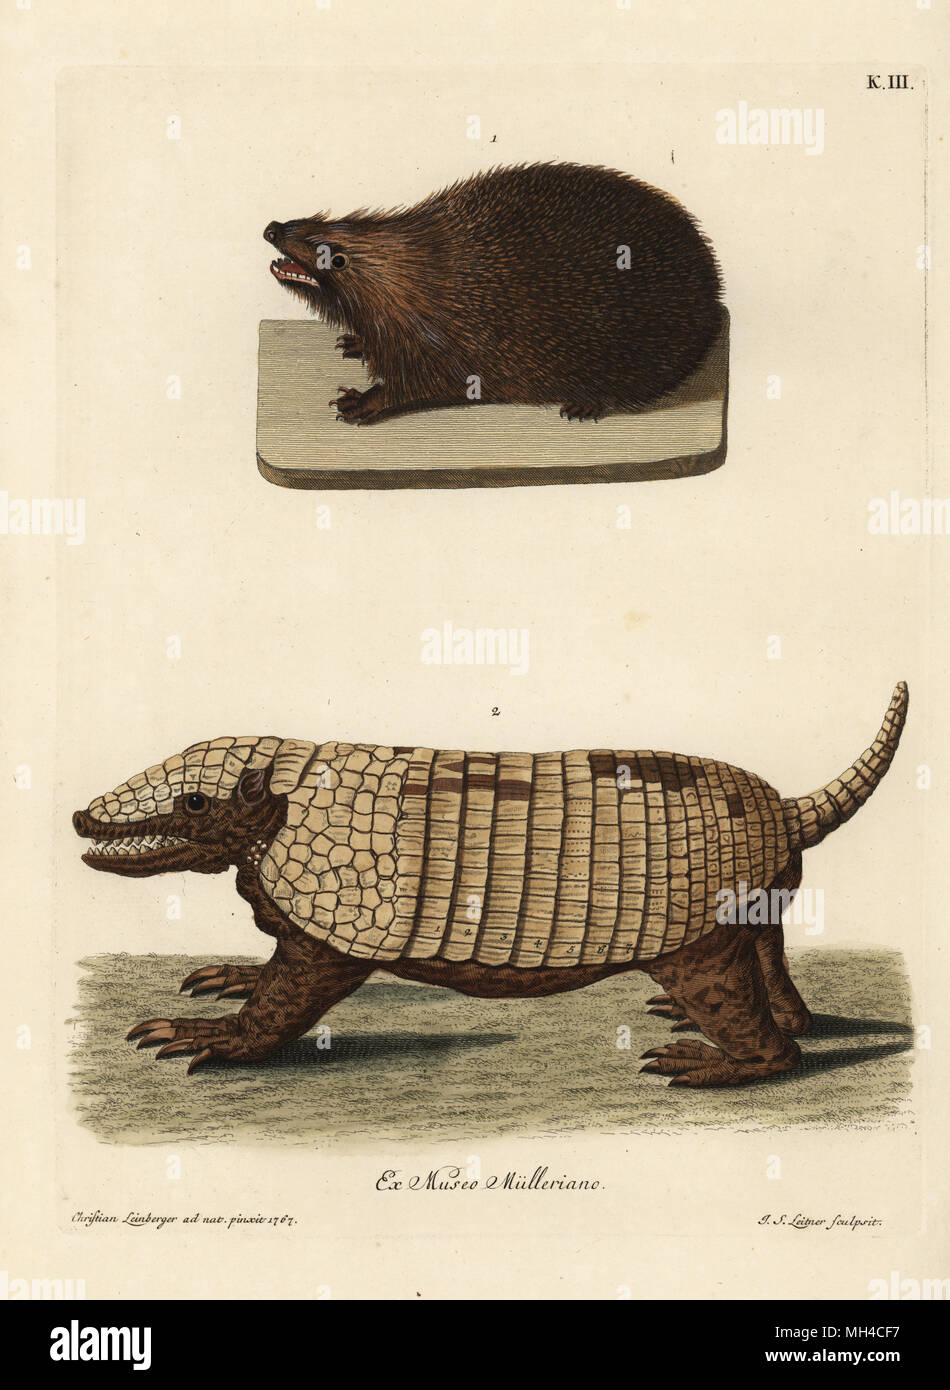 European hedgehog, Erinaceus europaeus, and seven-banded armadillo, Dasypus septemcinctus. (Porc epic de Zelande, Tatou ou armadillo d'Amerique.) Handcoloured copperplate engraving by Johann Sebastian Leitner after an illustration from nature by Christian Leinberger from Georg Wolfgang Knorr's Deliciae Naturae Selectae of Kabinet van Zeldzaamheden der Natuur, Blusse and Son, Nuremberg, 1771. Specimens from a Wunderkammer or Cabinet of Curiosities owned by P.L. Muller. - Stock Image